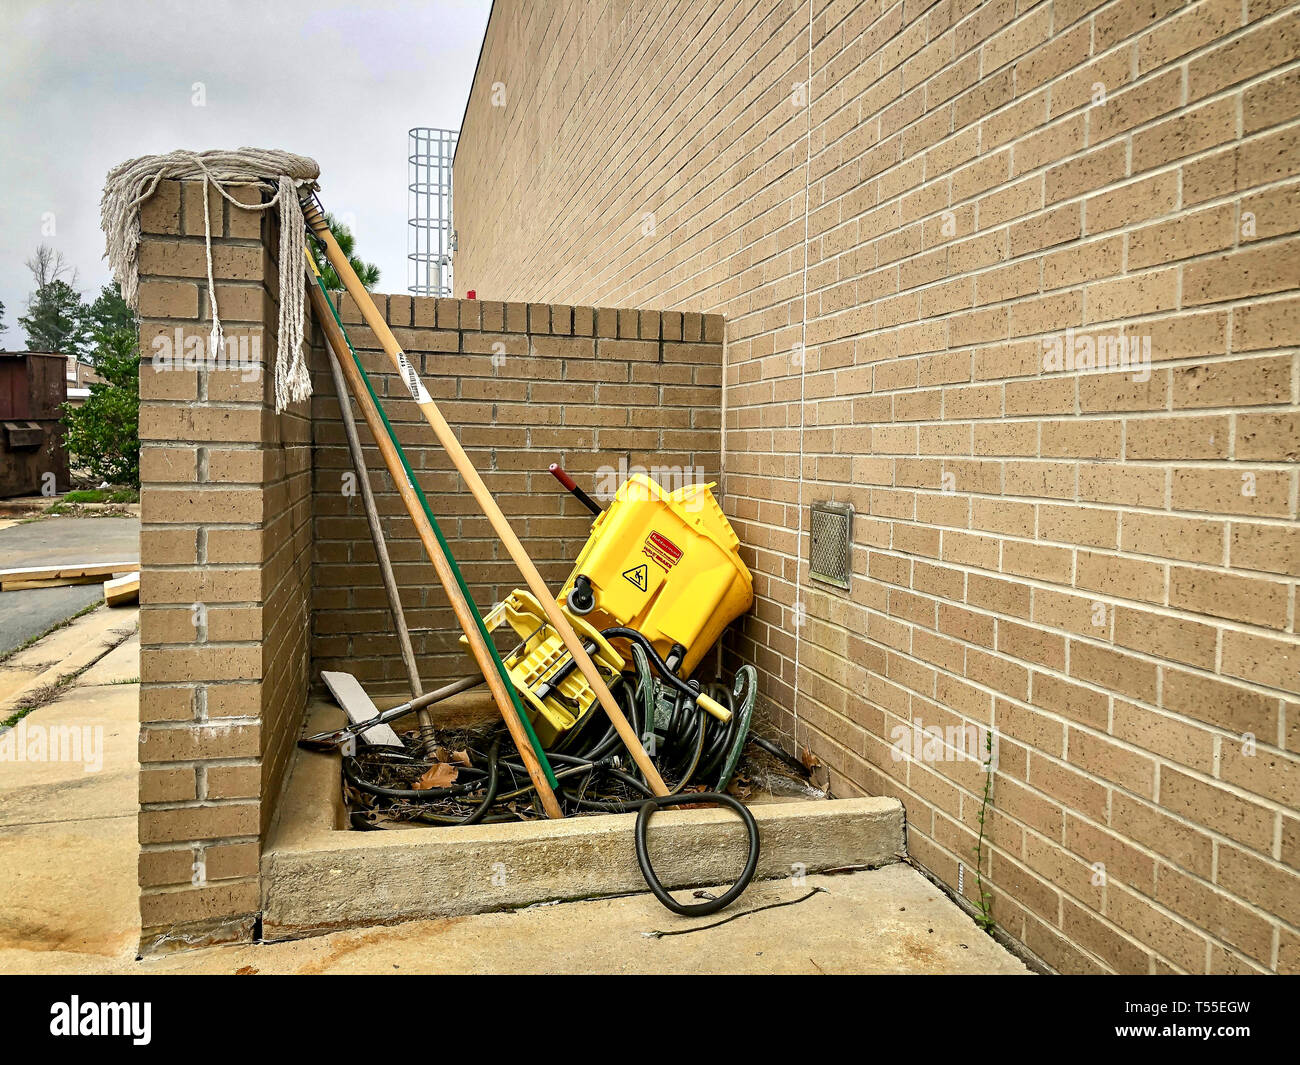 Outdoor Janitorial station in disarray mess Stock Photo